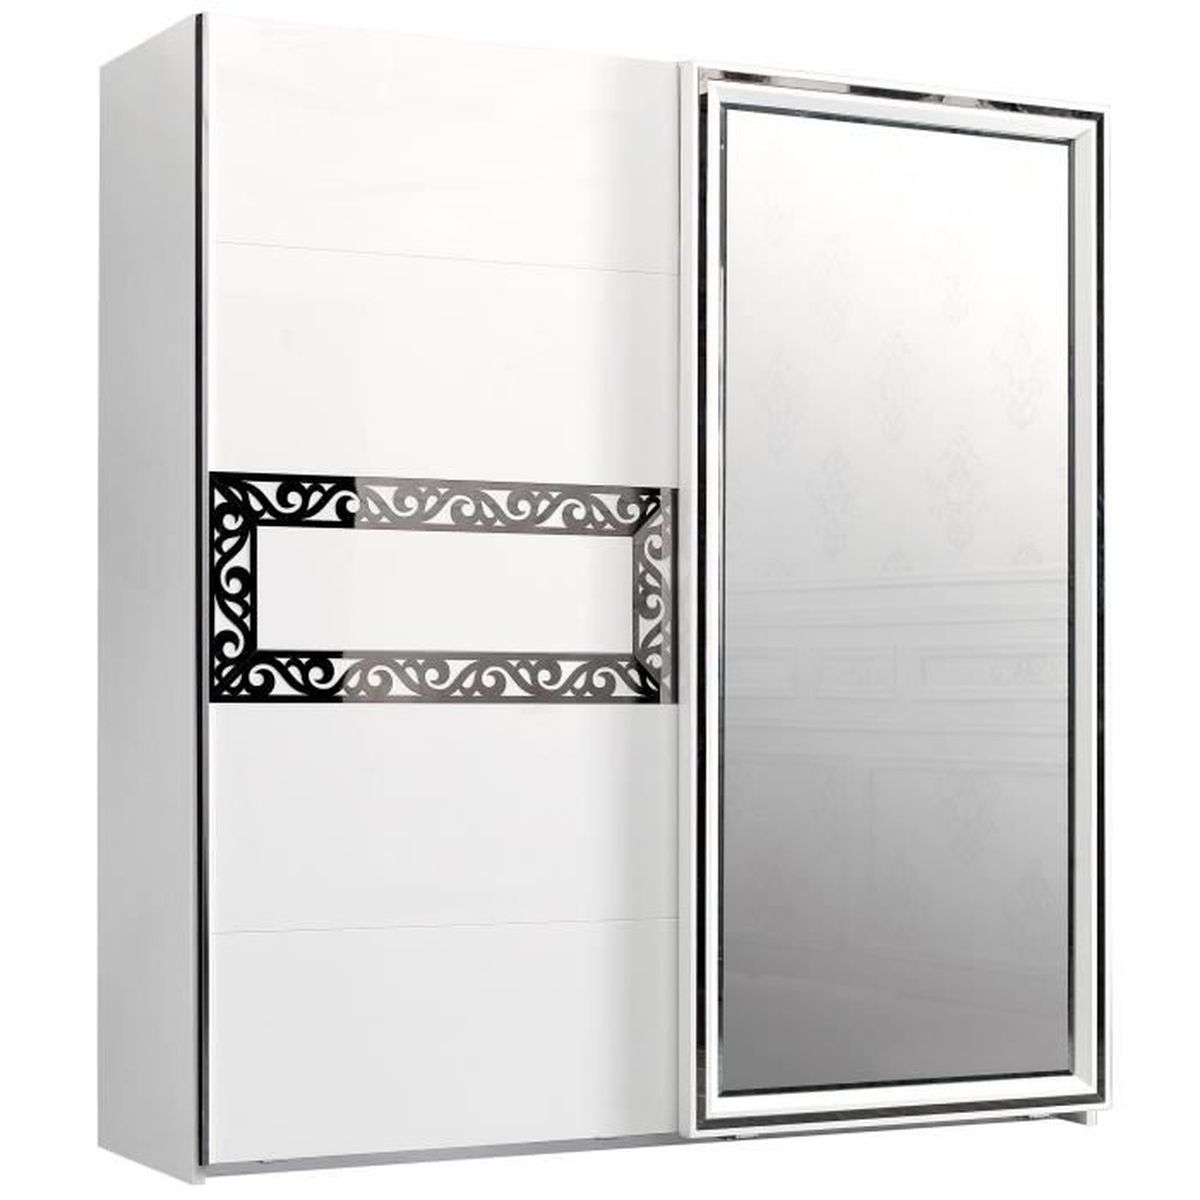 armoire 202x220 cm 1 porte miroir coulissante 1 porte. Black Bedroom Furniture Sets. Home Design Ideas